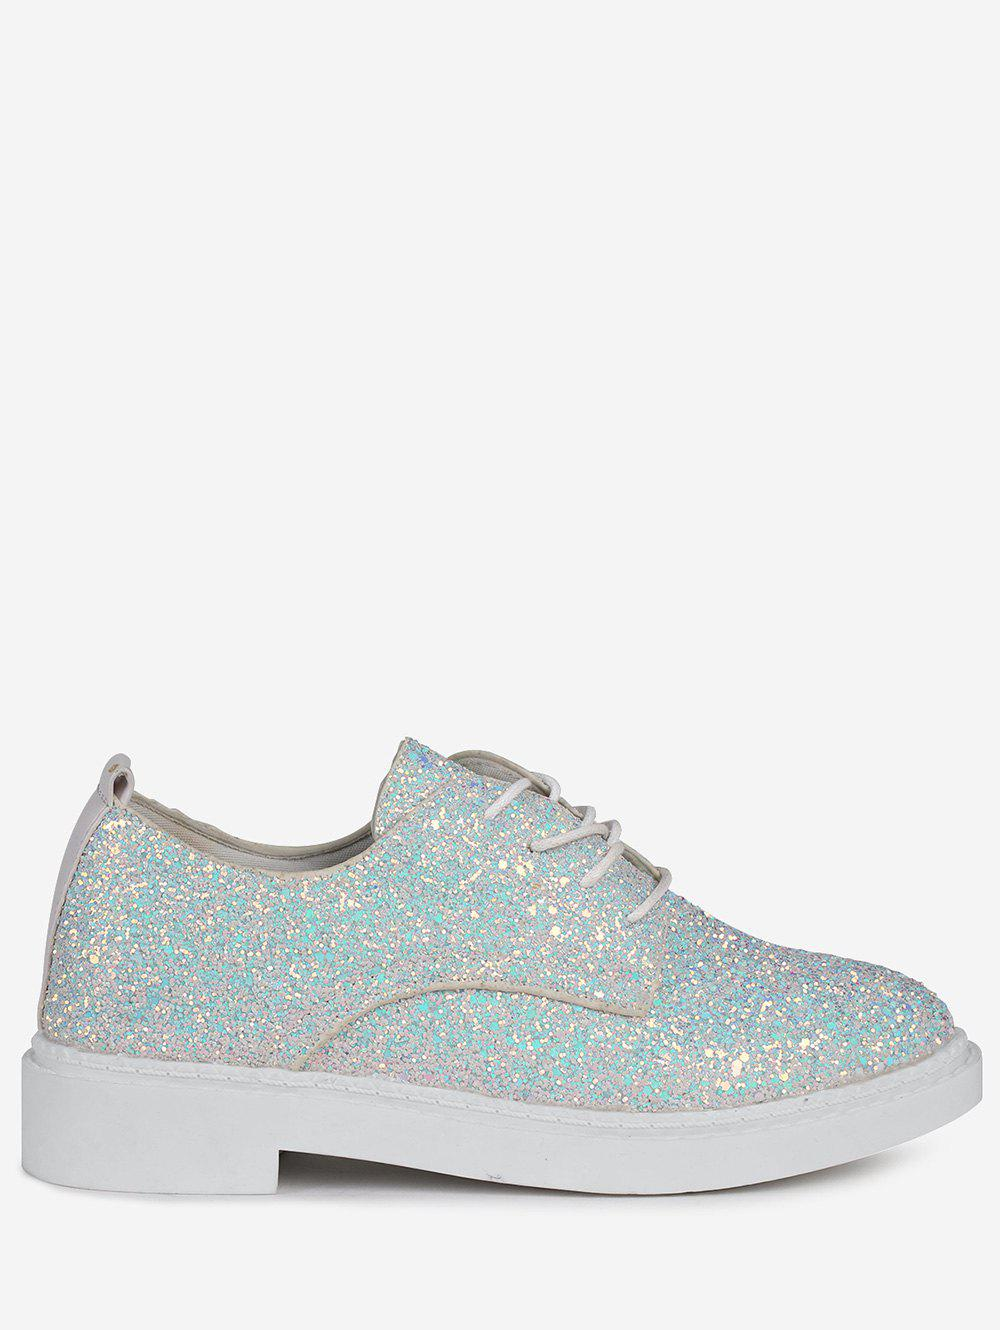 Glitter Low Top Tie Up Flat Shoes - Blanc 37